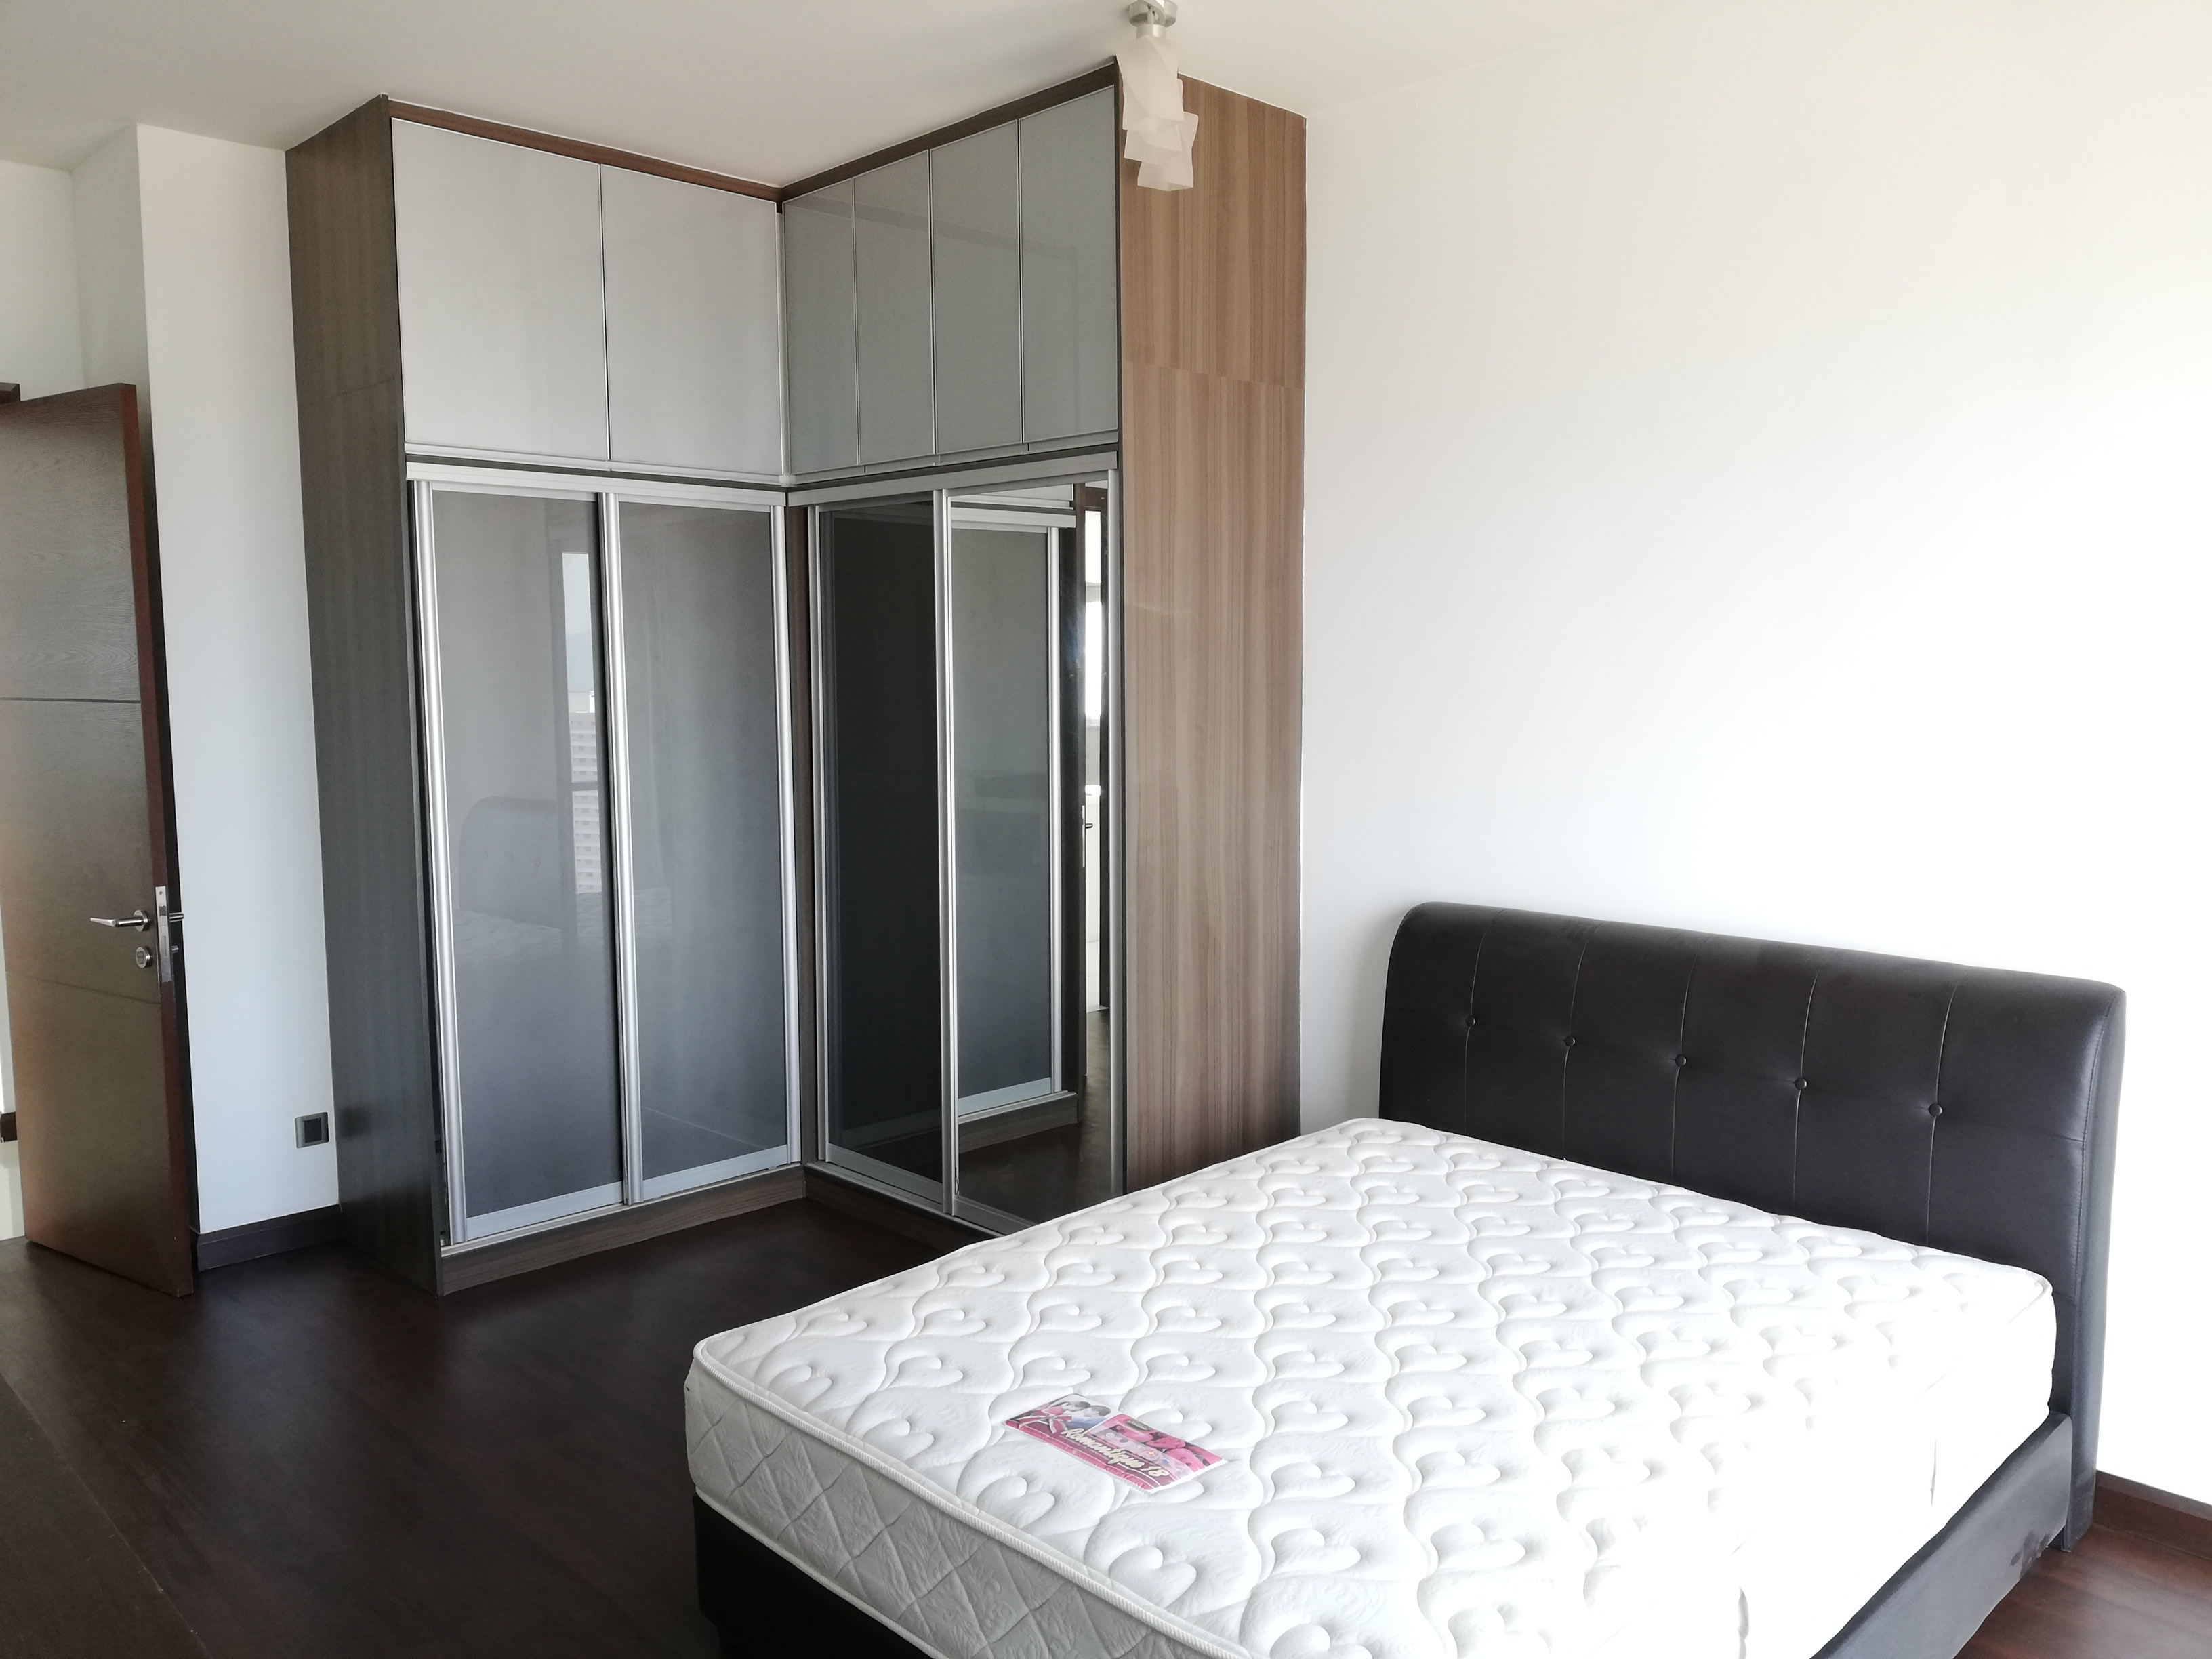 [RENT] THE NORTHSHORE GARDENS, Desa ParkCity /  1948 sq.ft / 3+1R 4b / Fully furnished – RM5,500